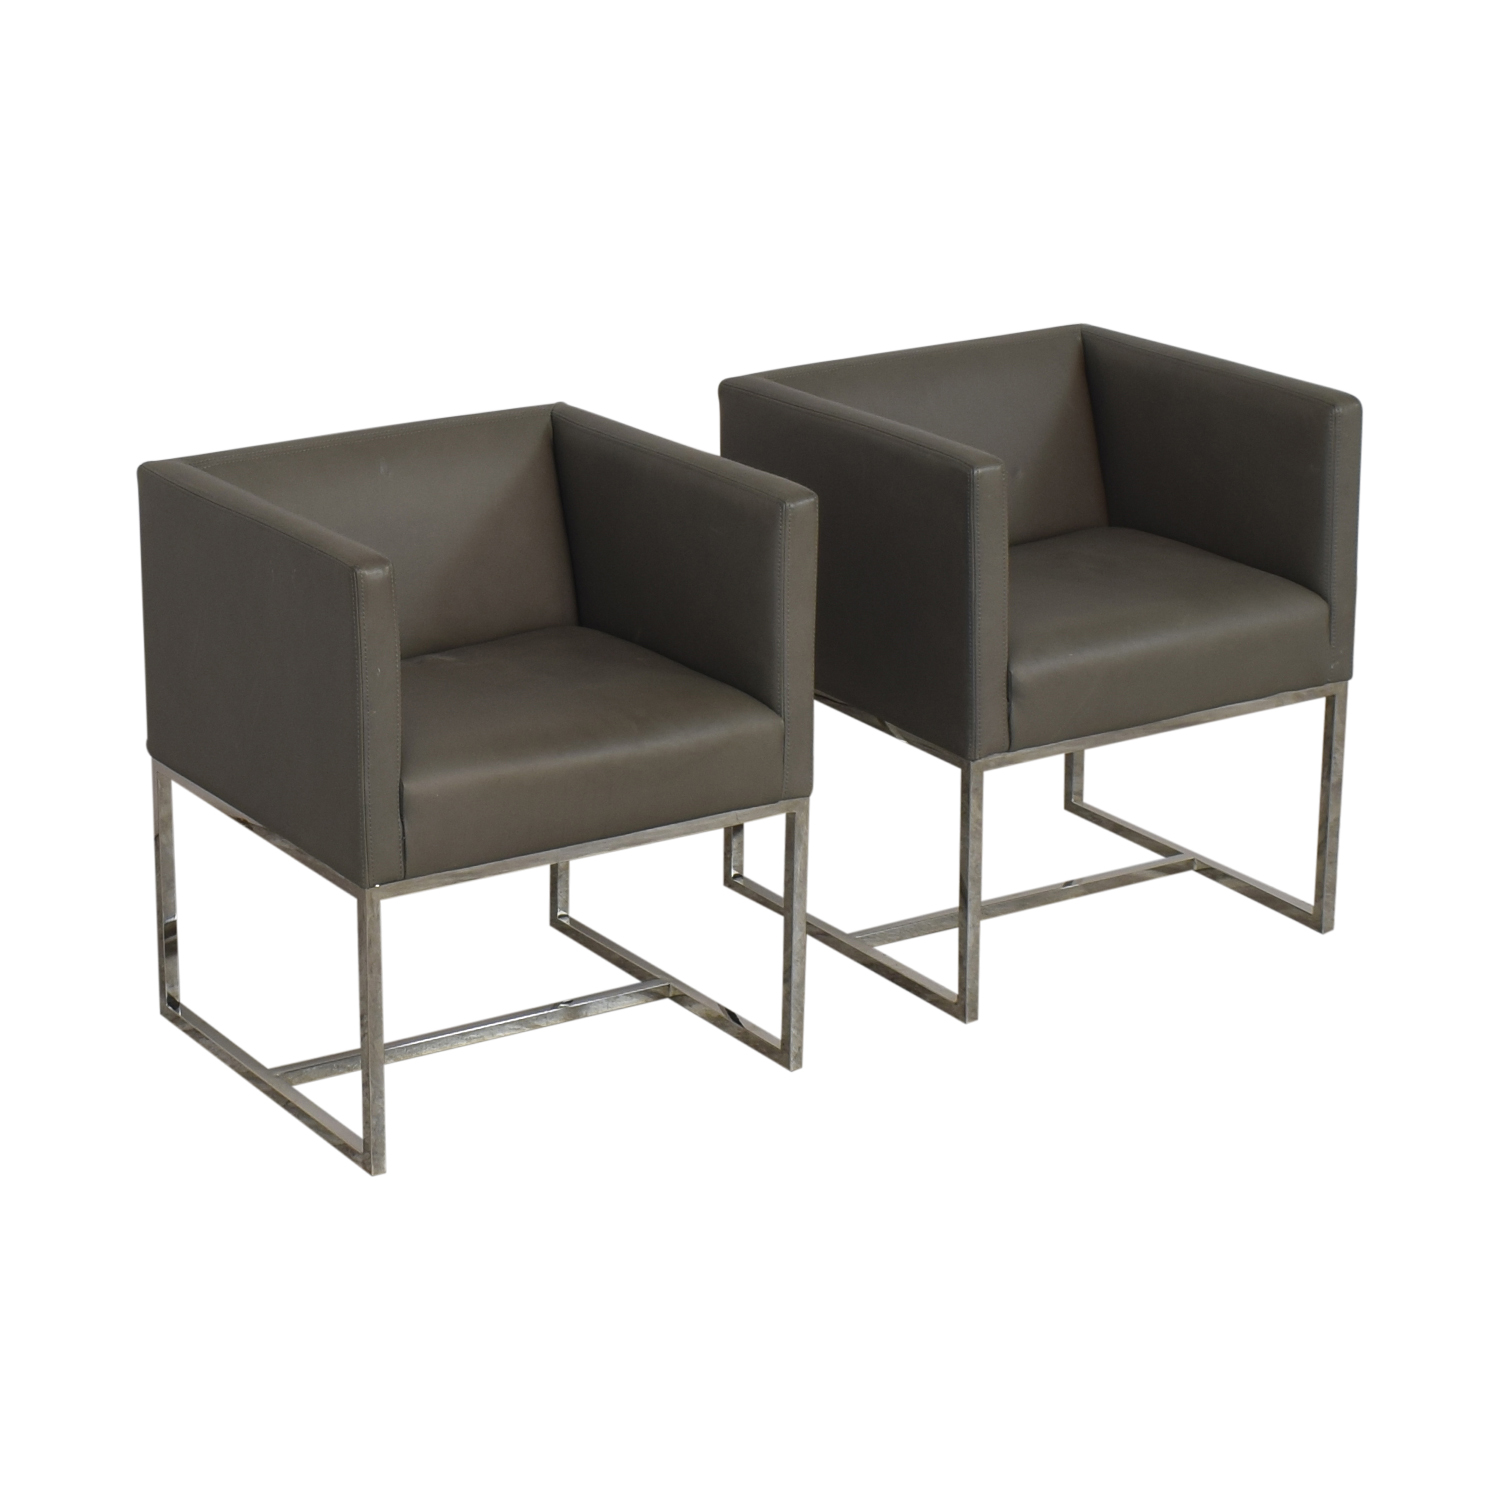 Restoration Hardware Restoration Hardware Emery Shelter Arm Chairs ma